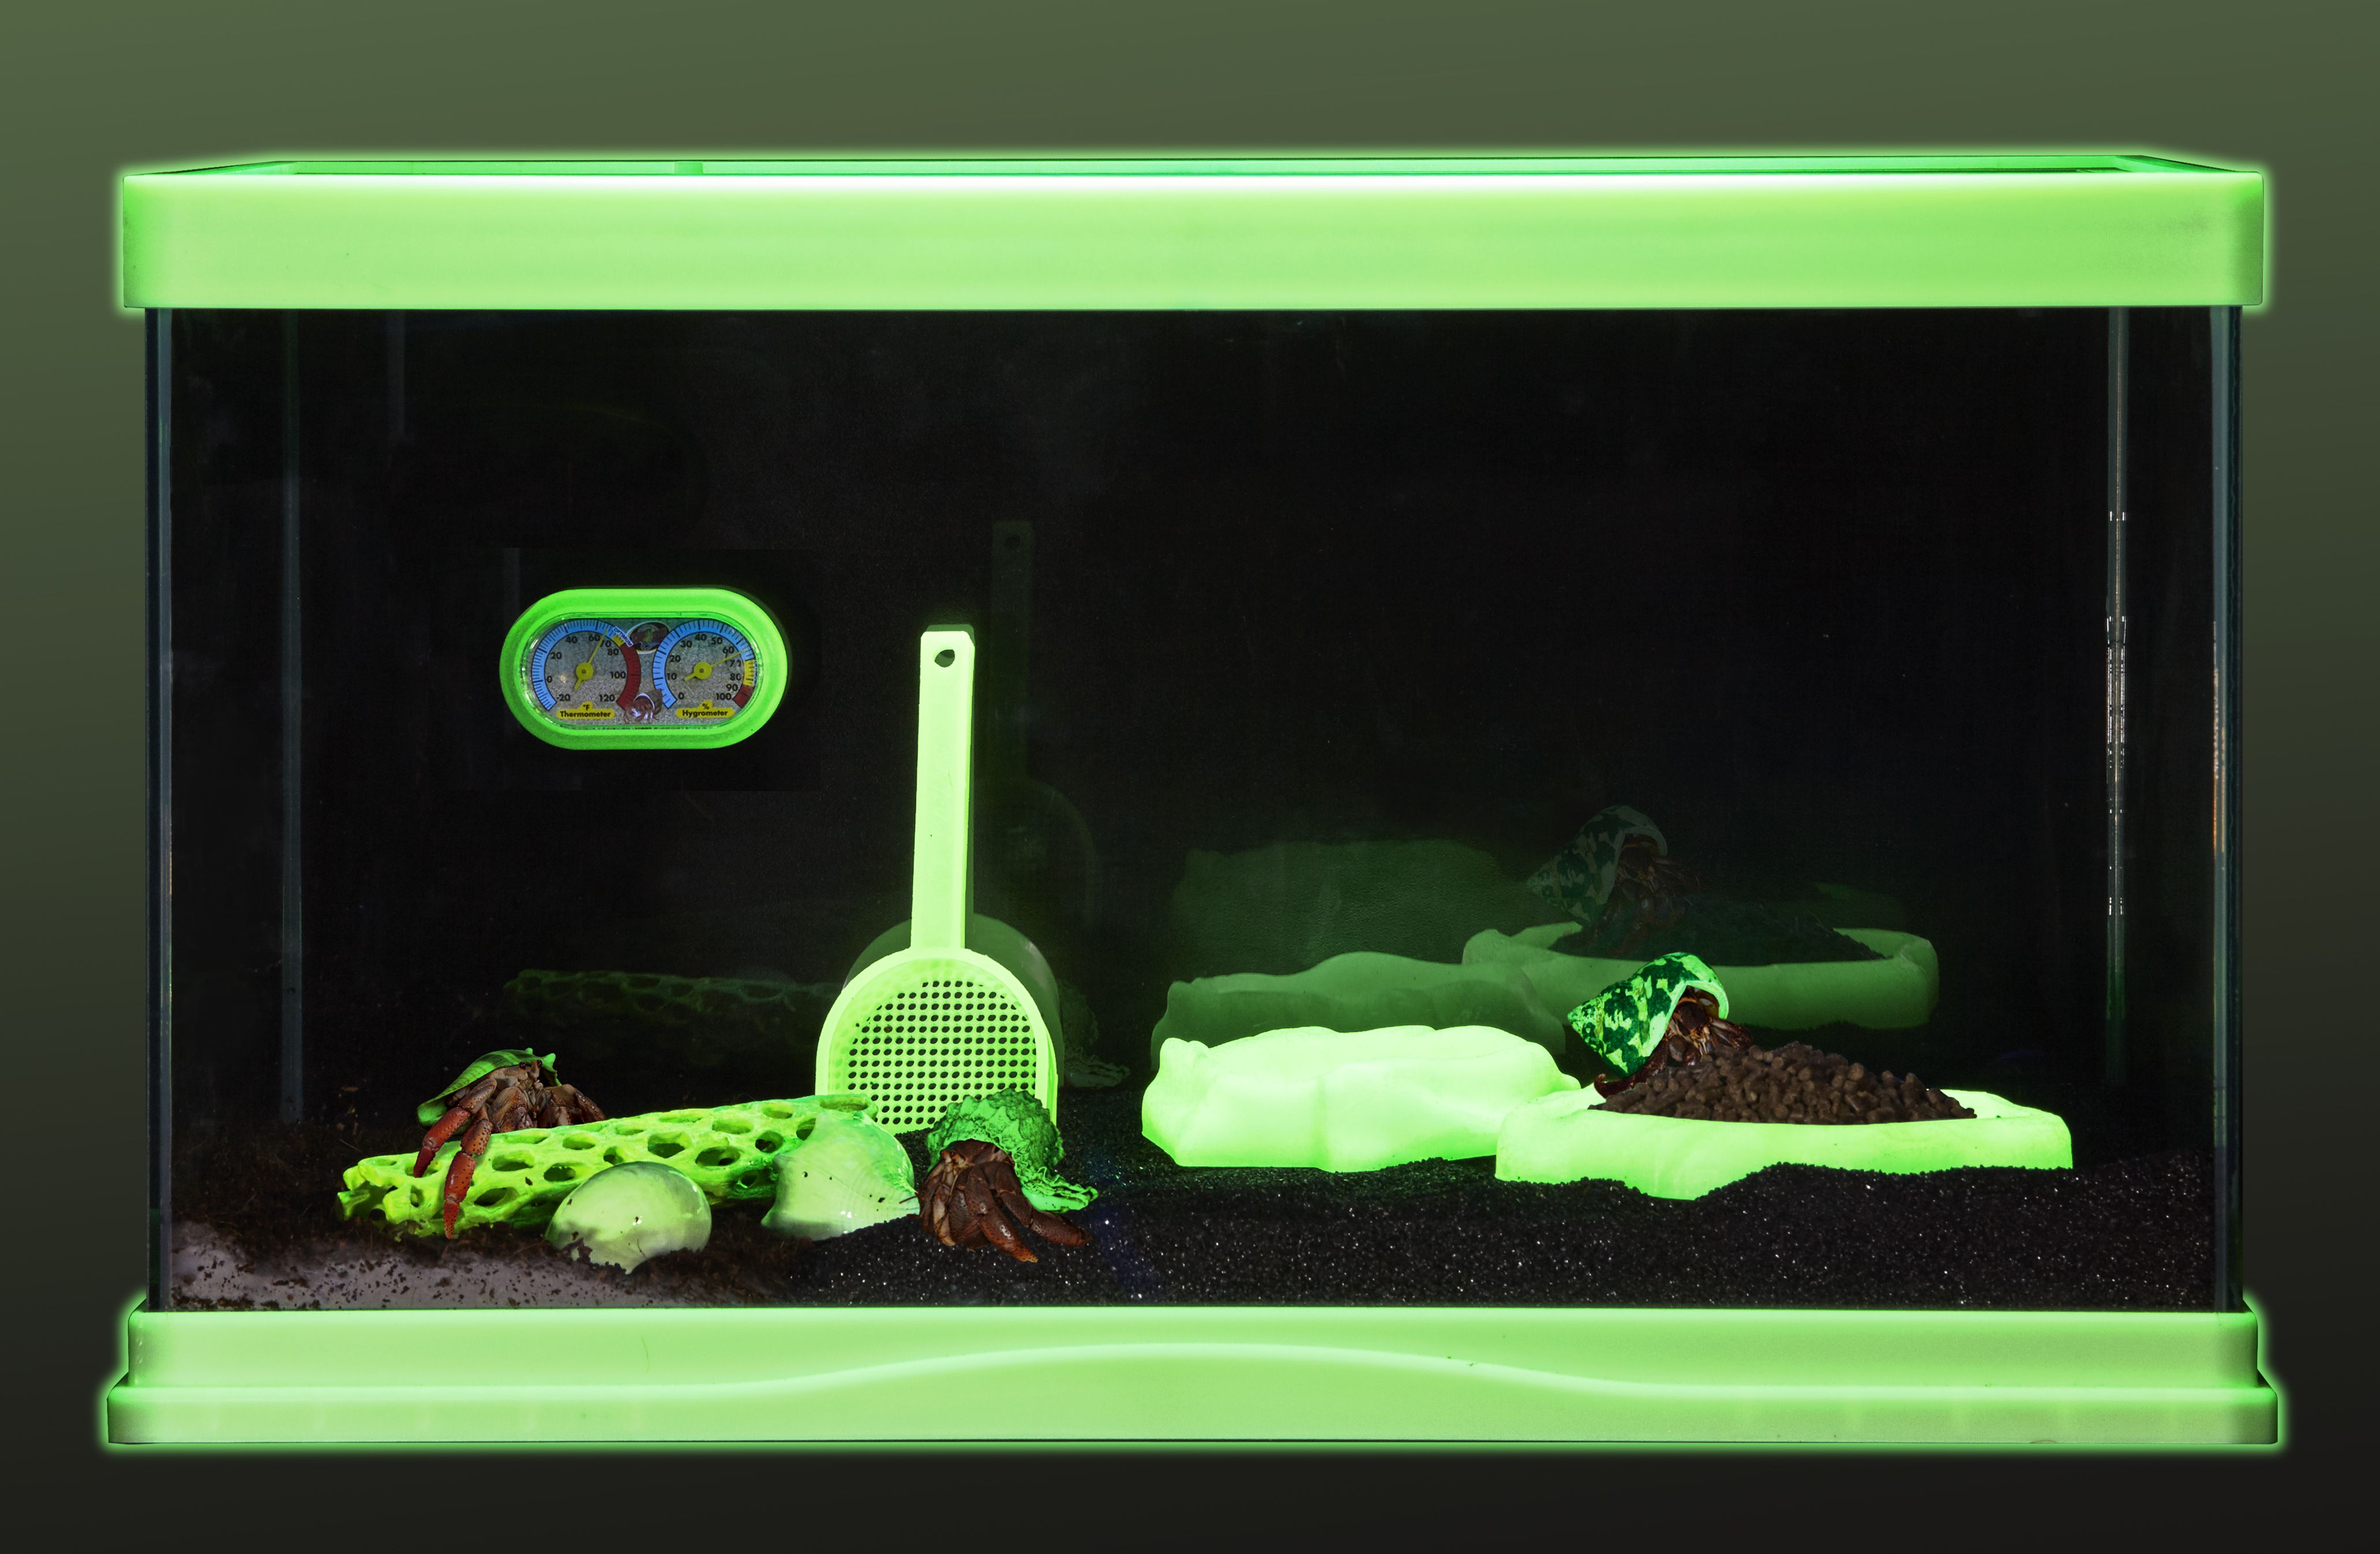 Start Your New Hermit Crab Habitat With This Cool 10